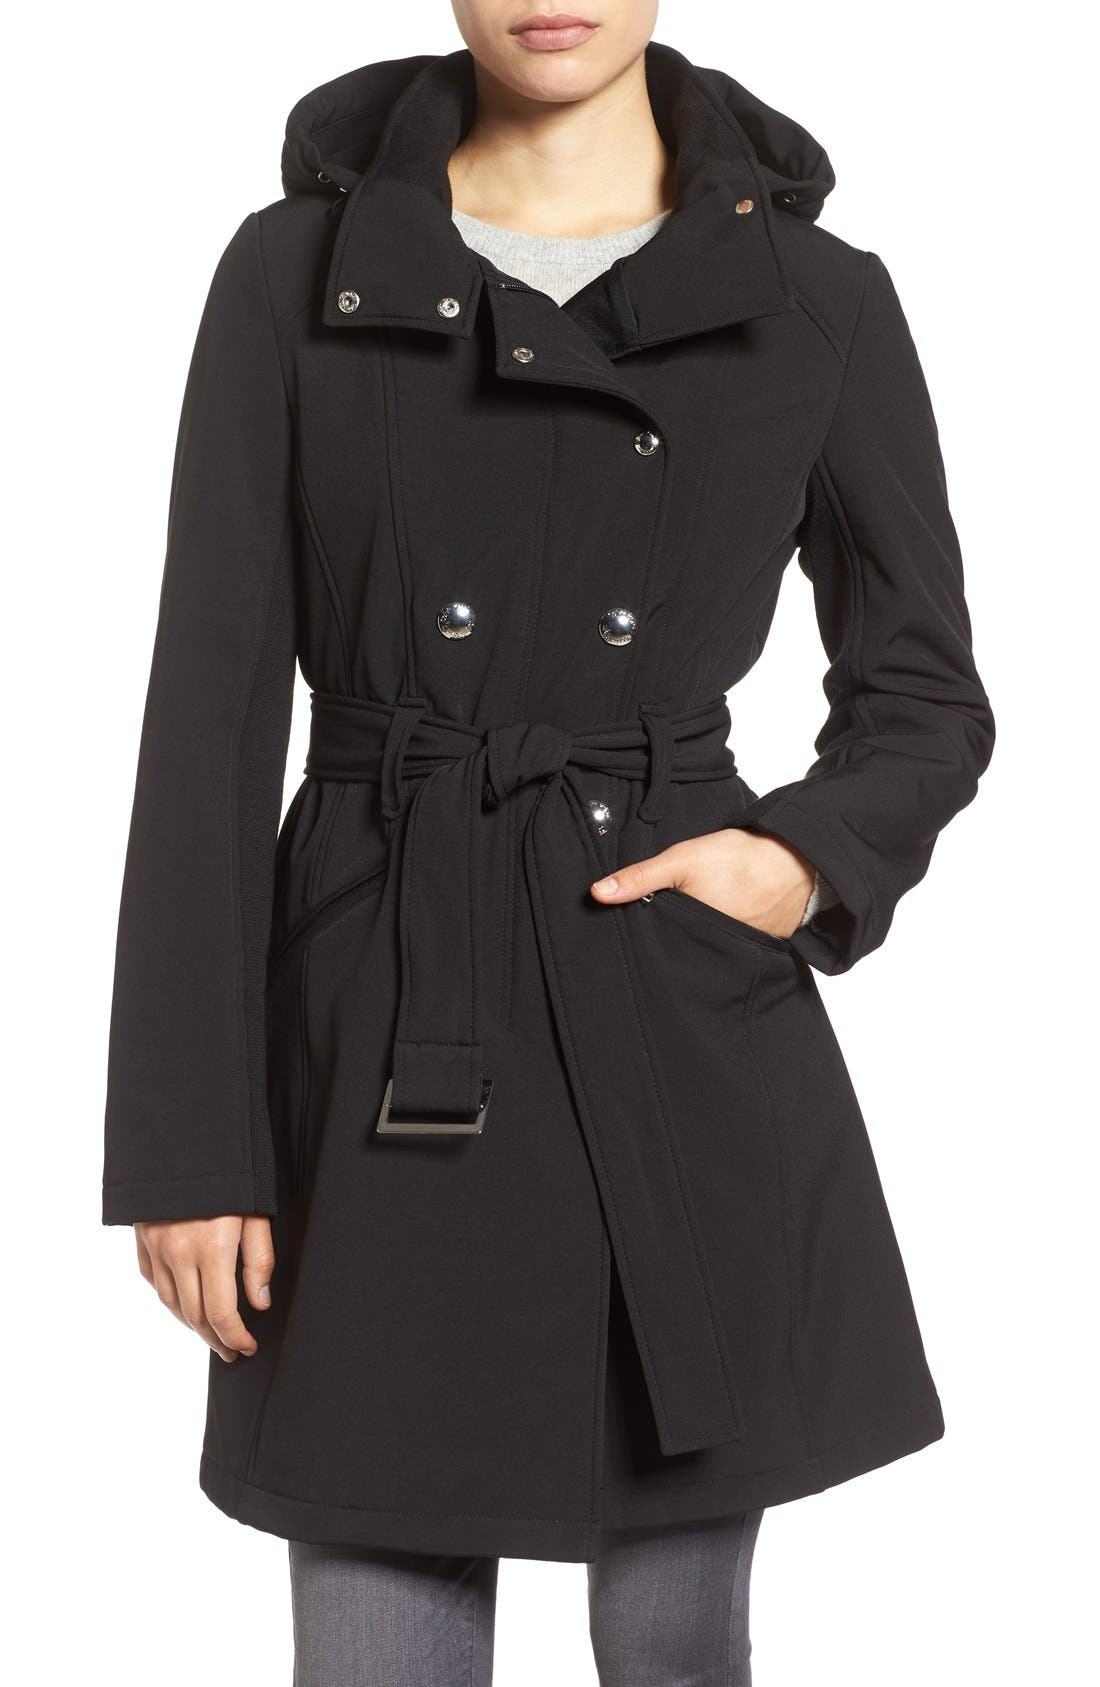 Alternate Image 1 Selected - Calvin Klein Double Breasted Soft Shell Trench Coat